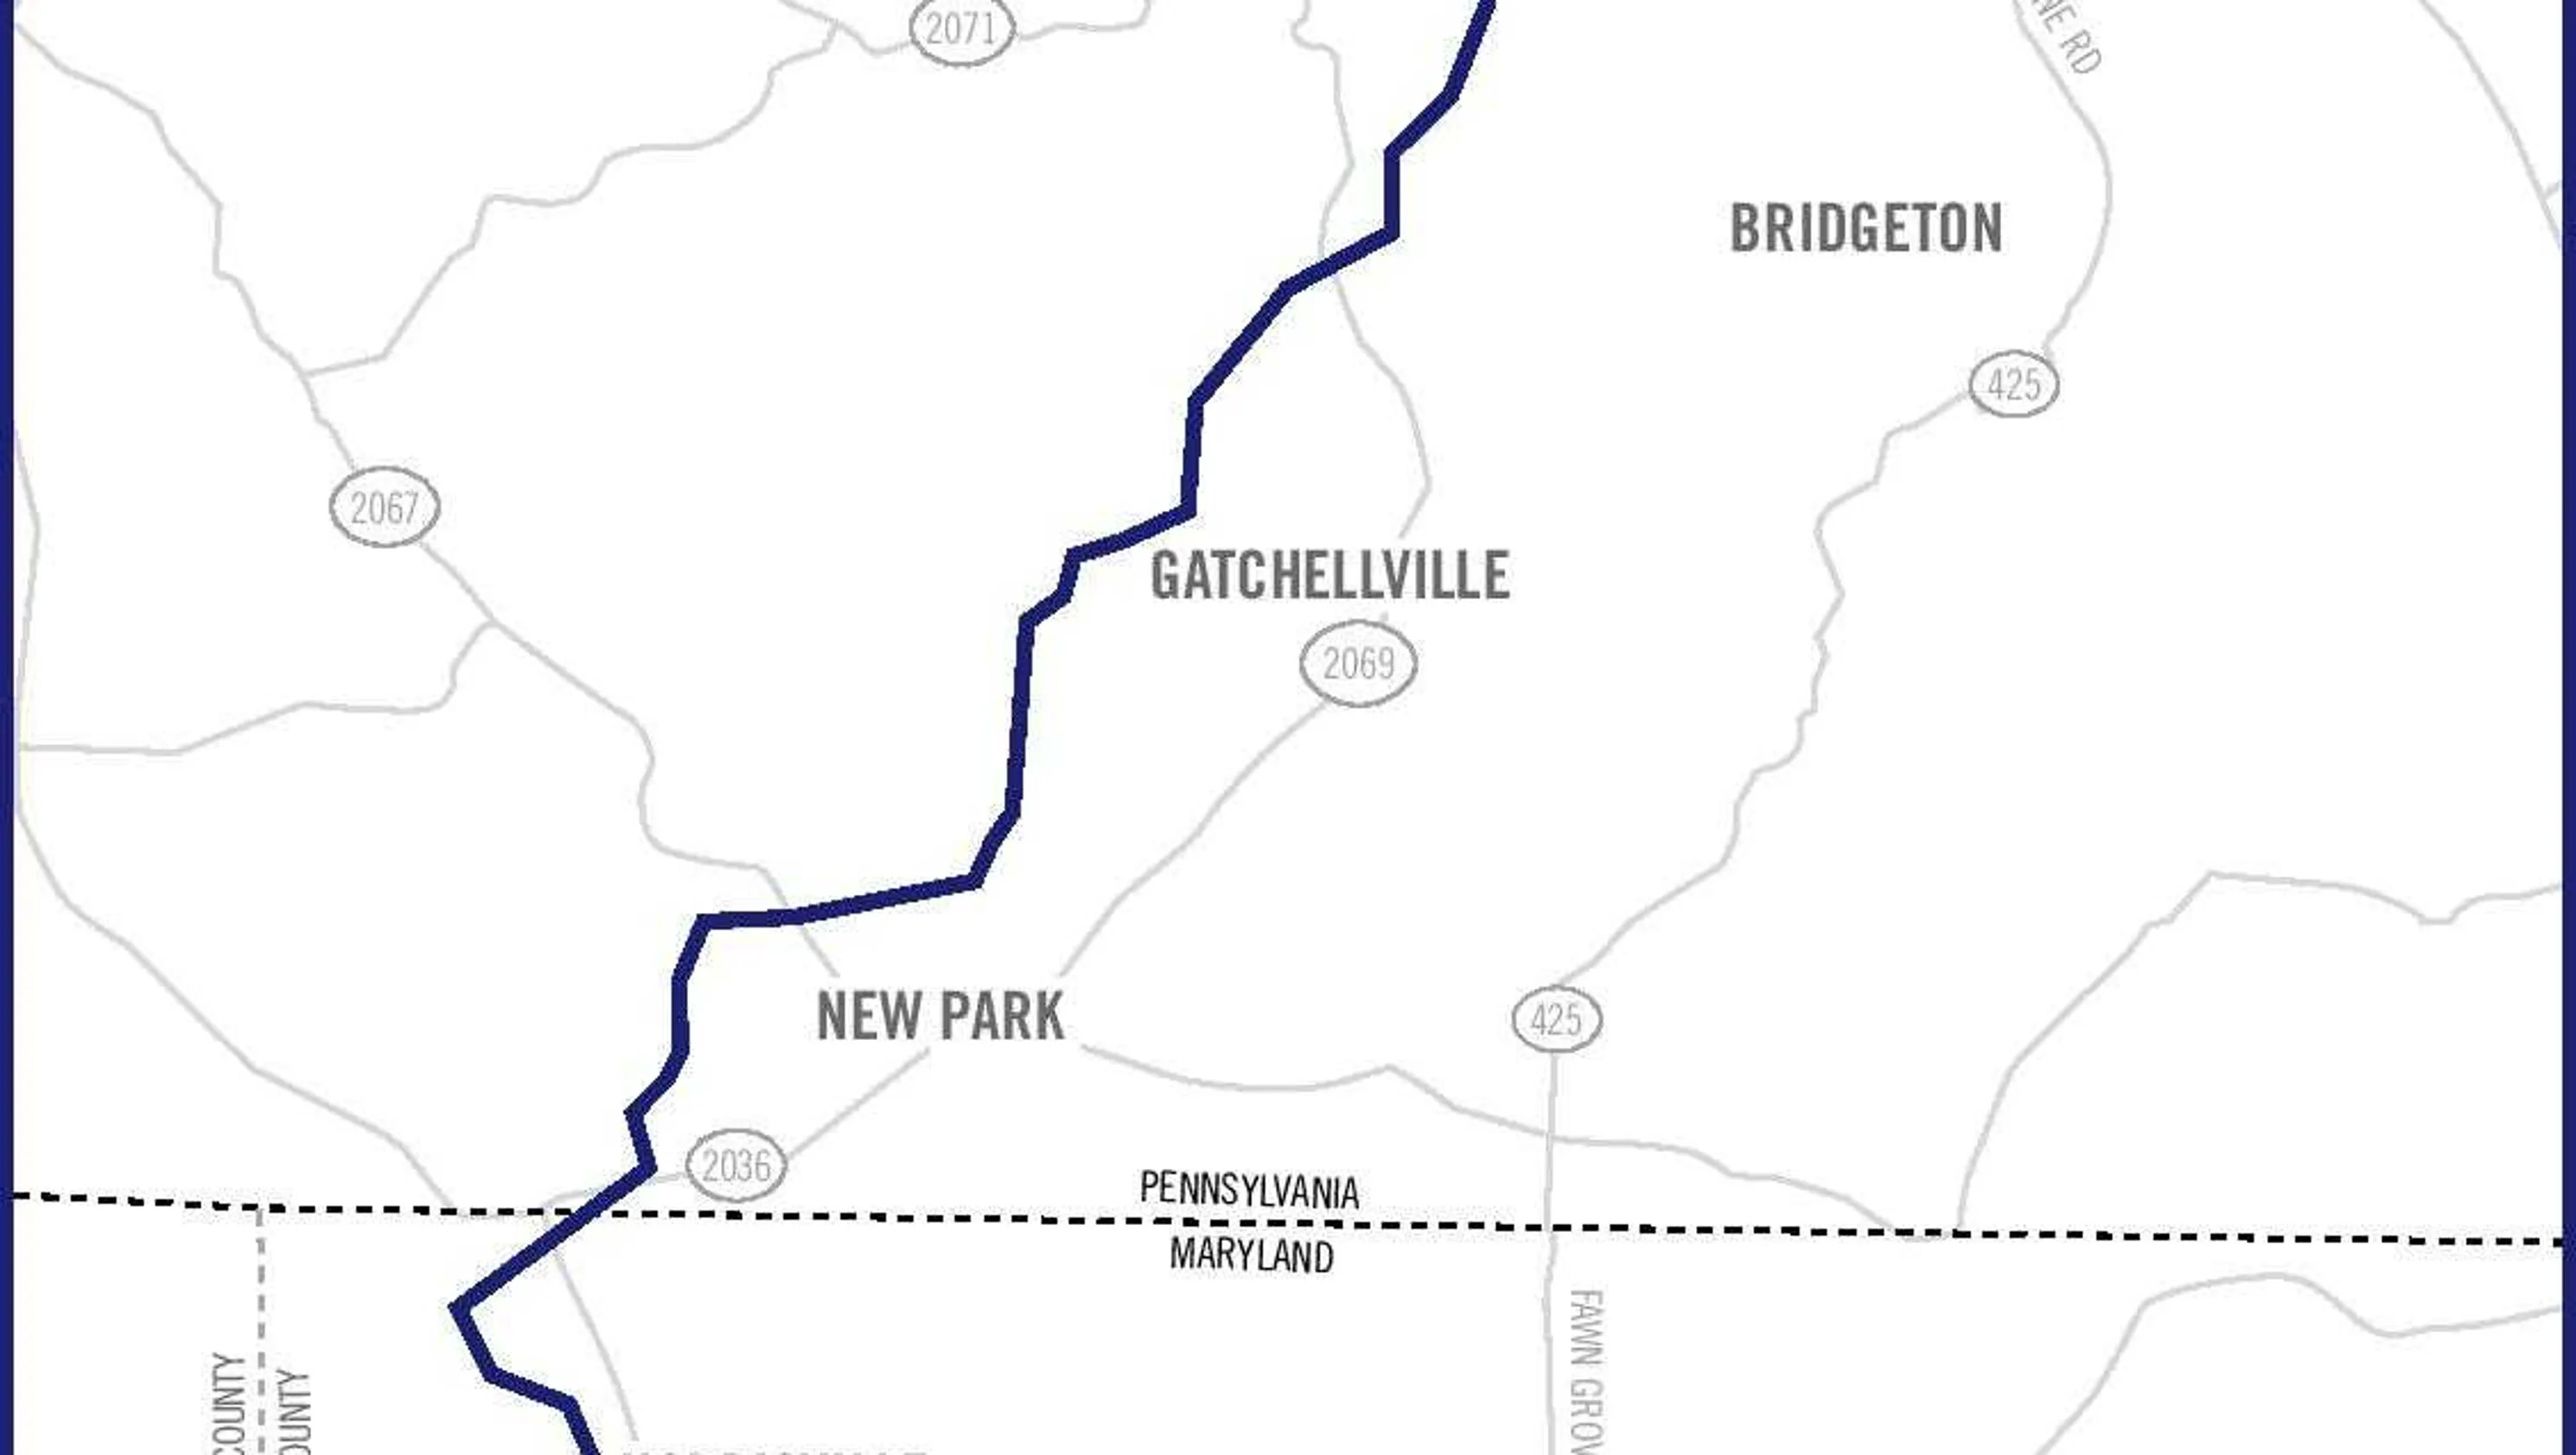 Transource Shows Plans For For 16 Mile Power Line Through